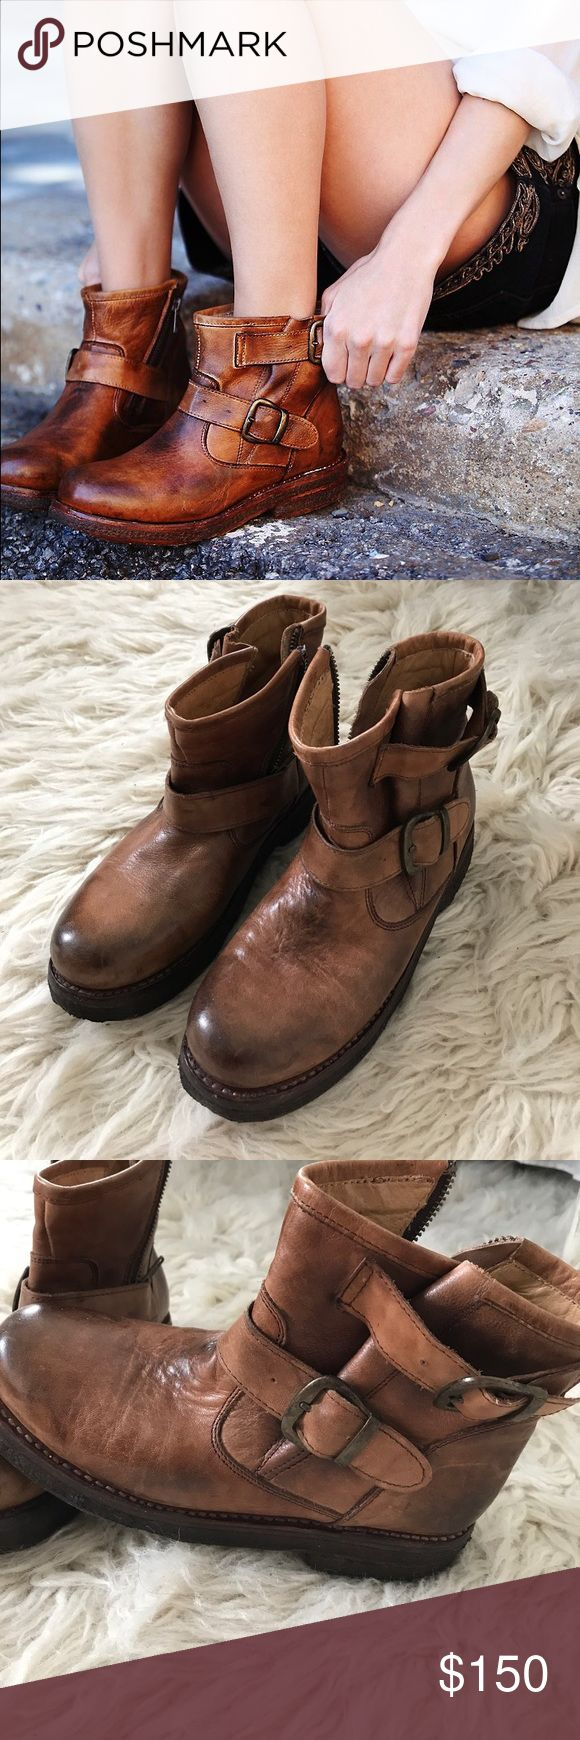 Free People Bed Stu brown ride boots Made by Bed Stu, this cool boots are so amazing. Well made handcrafted boots with antique leather look.  Great with dress or jeans. Very good condition. Free People Shoes Ankle Boots & Booties